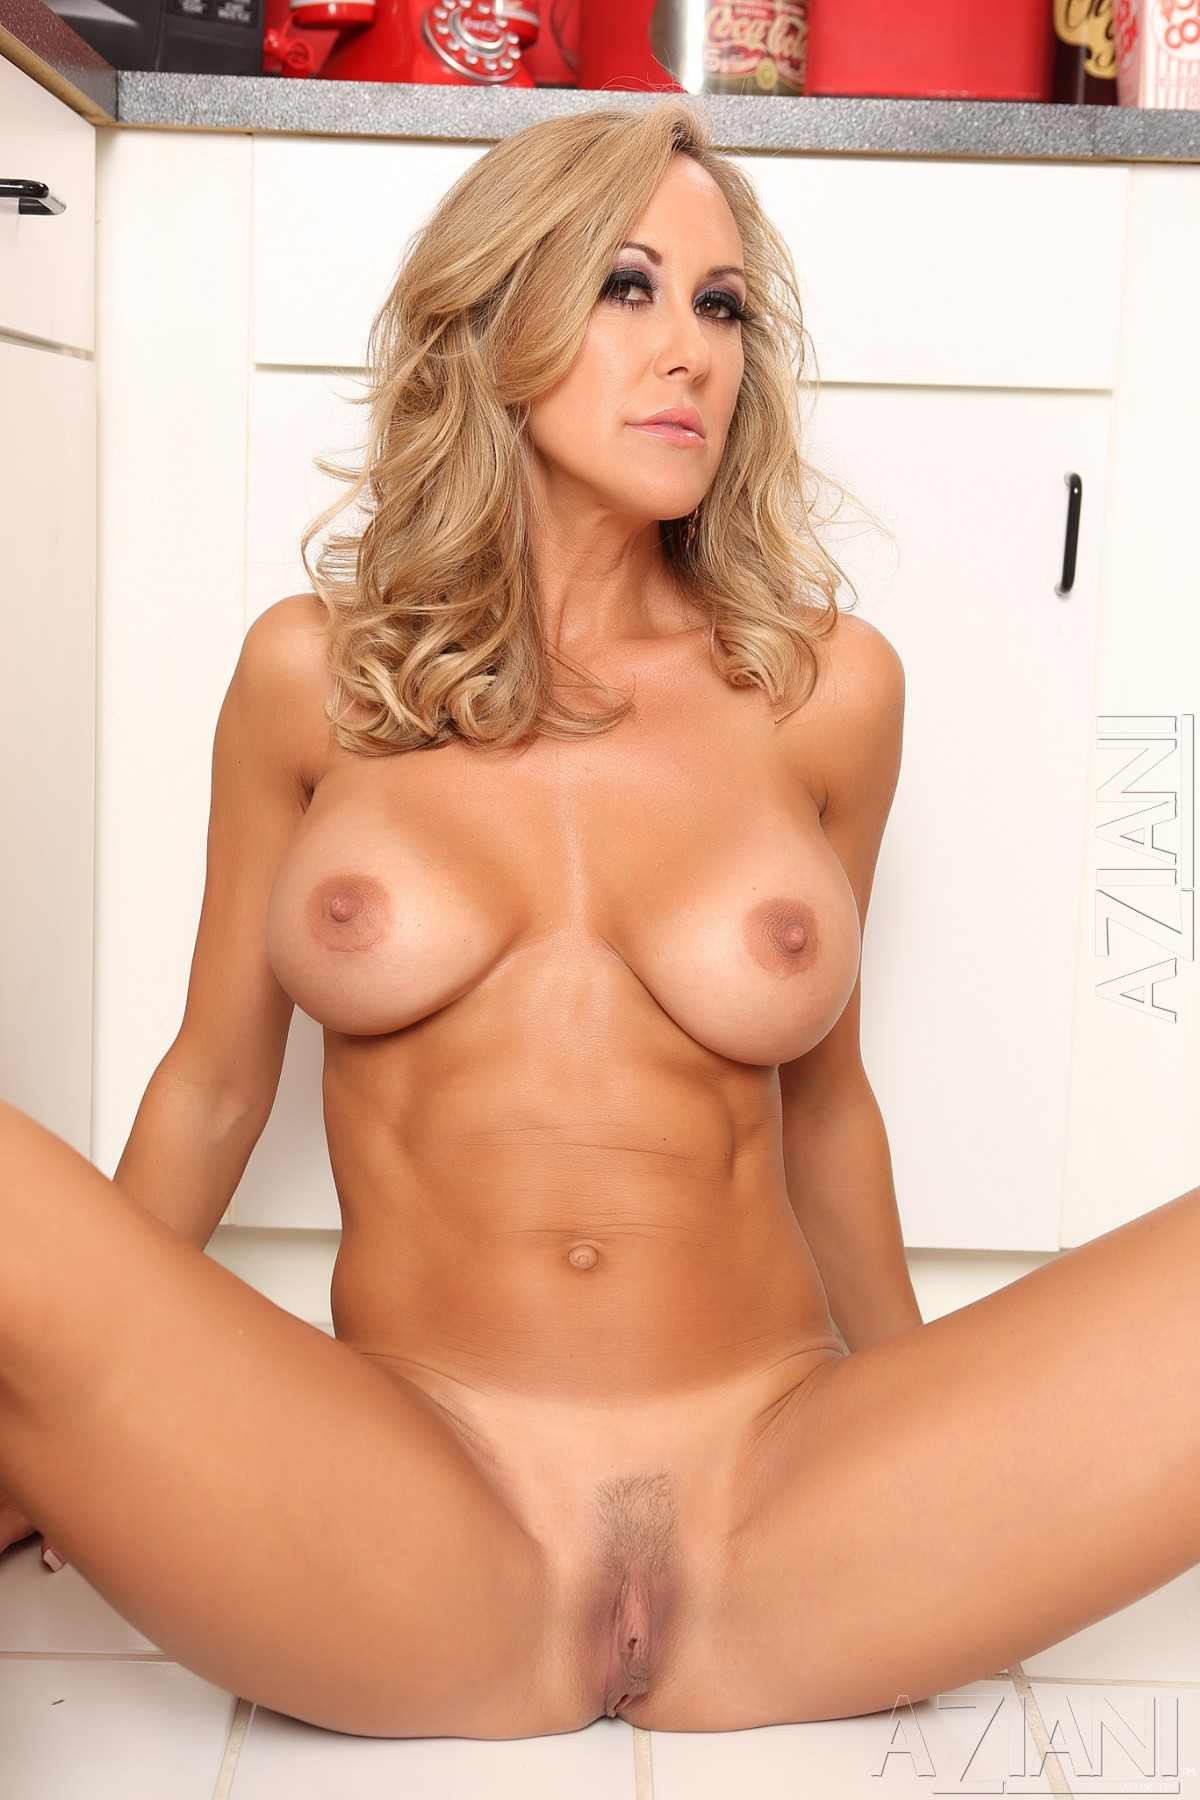 Renee jordan shows off her cameltoe 8